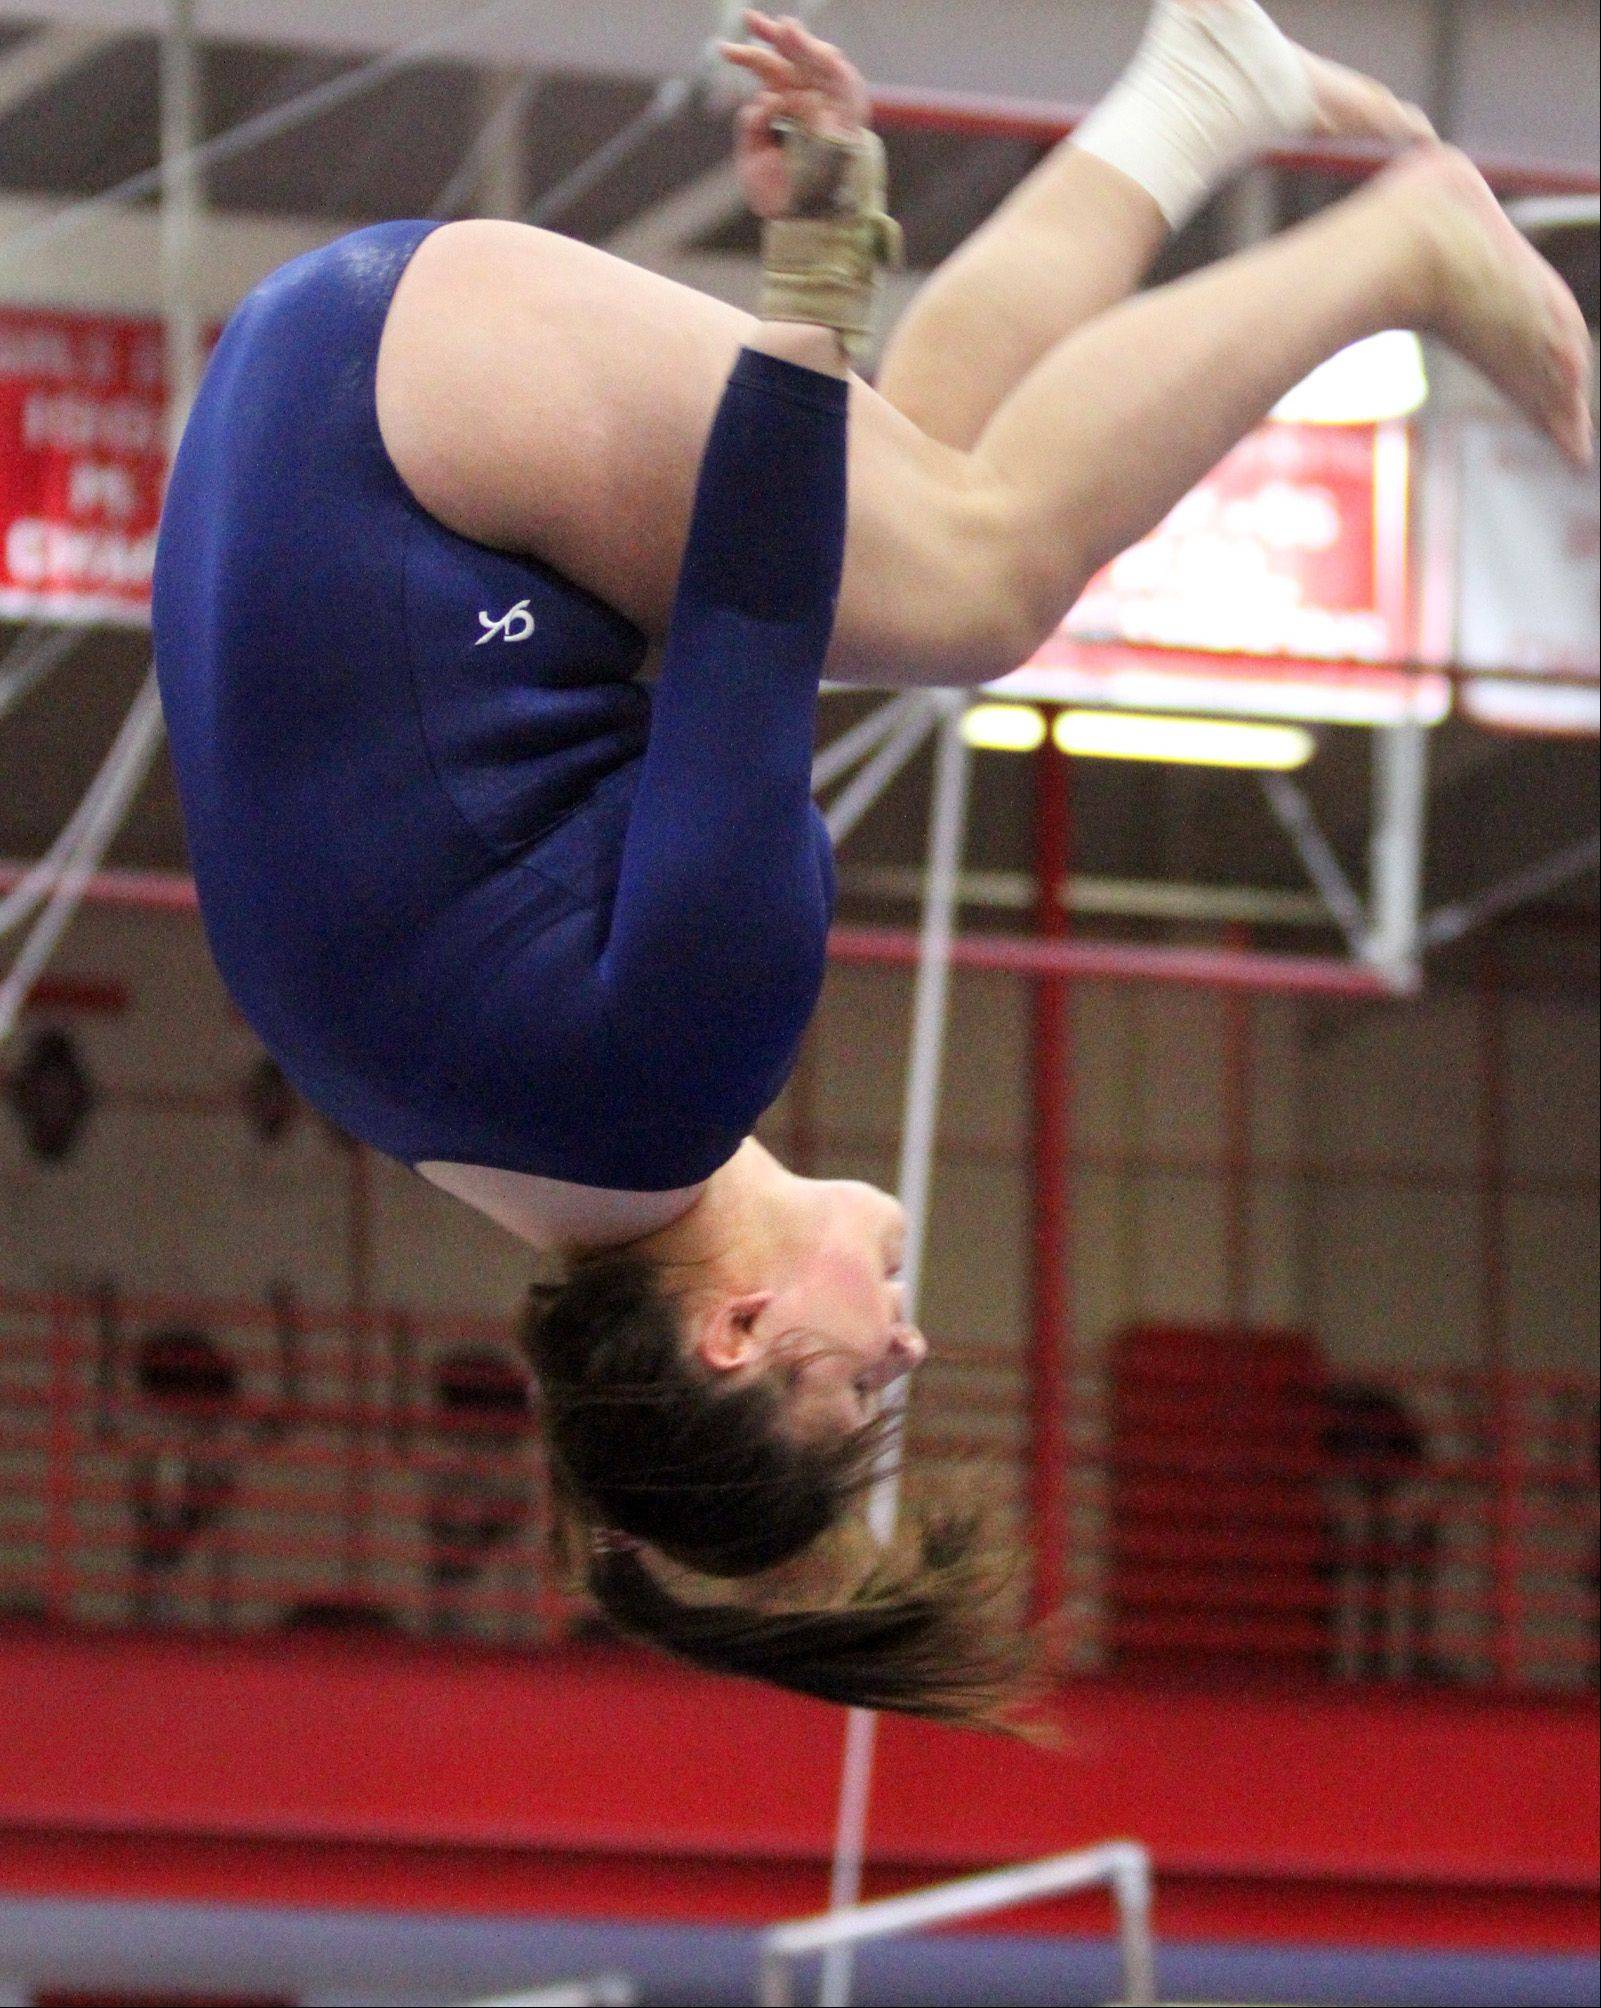 Megan Barnes with Bartlett/South Elgin (Coop) competes on the balance beam at the Palatine invitational on Saturday.